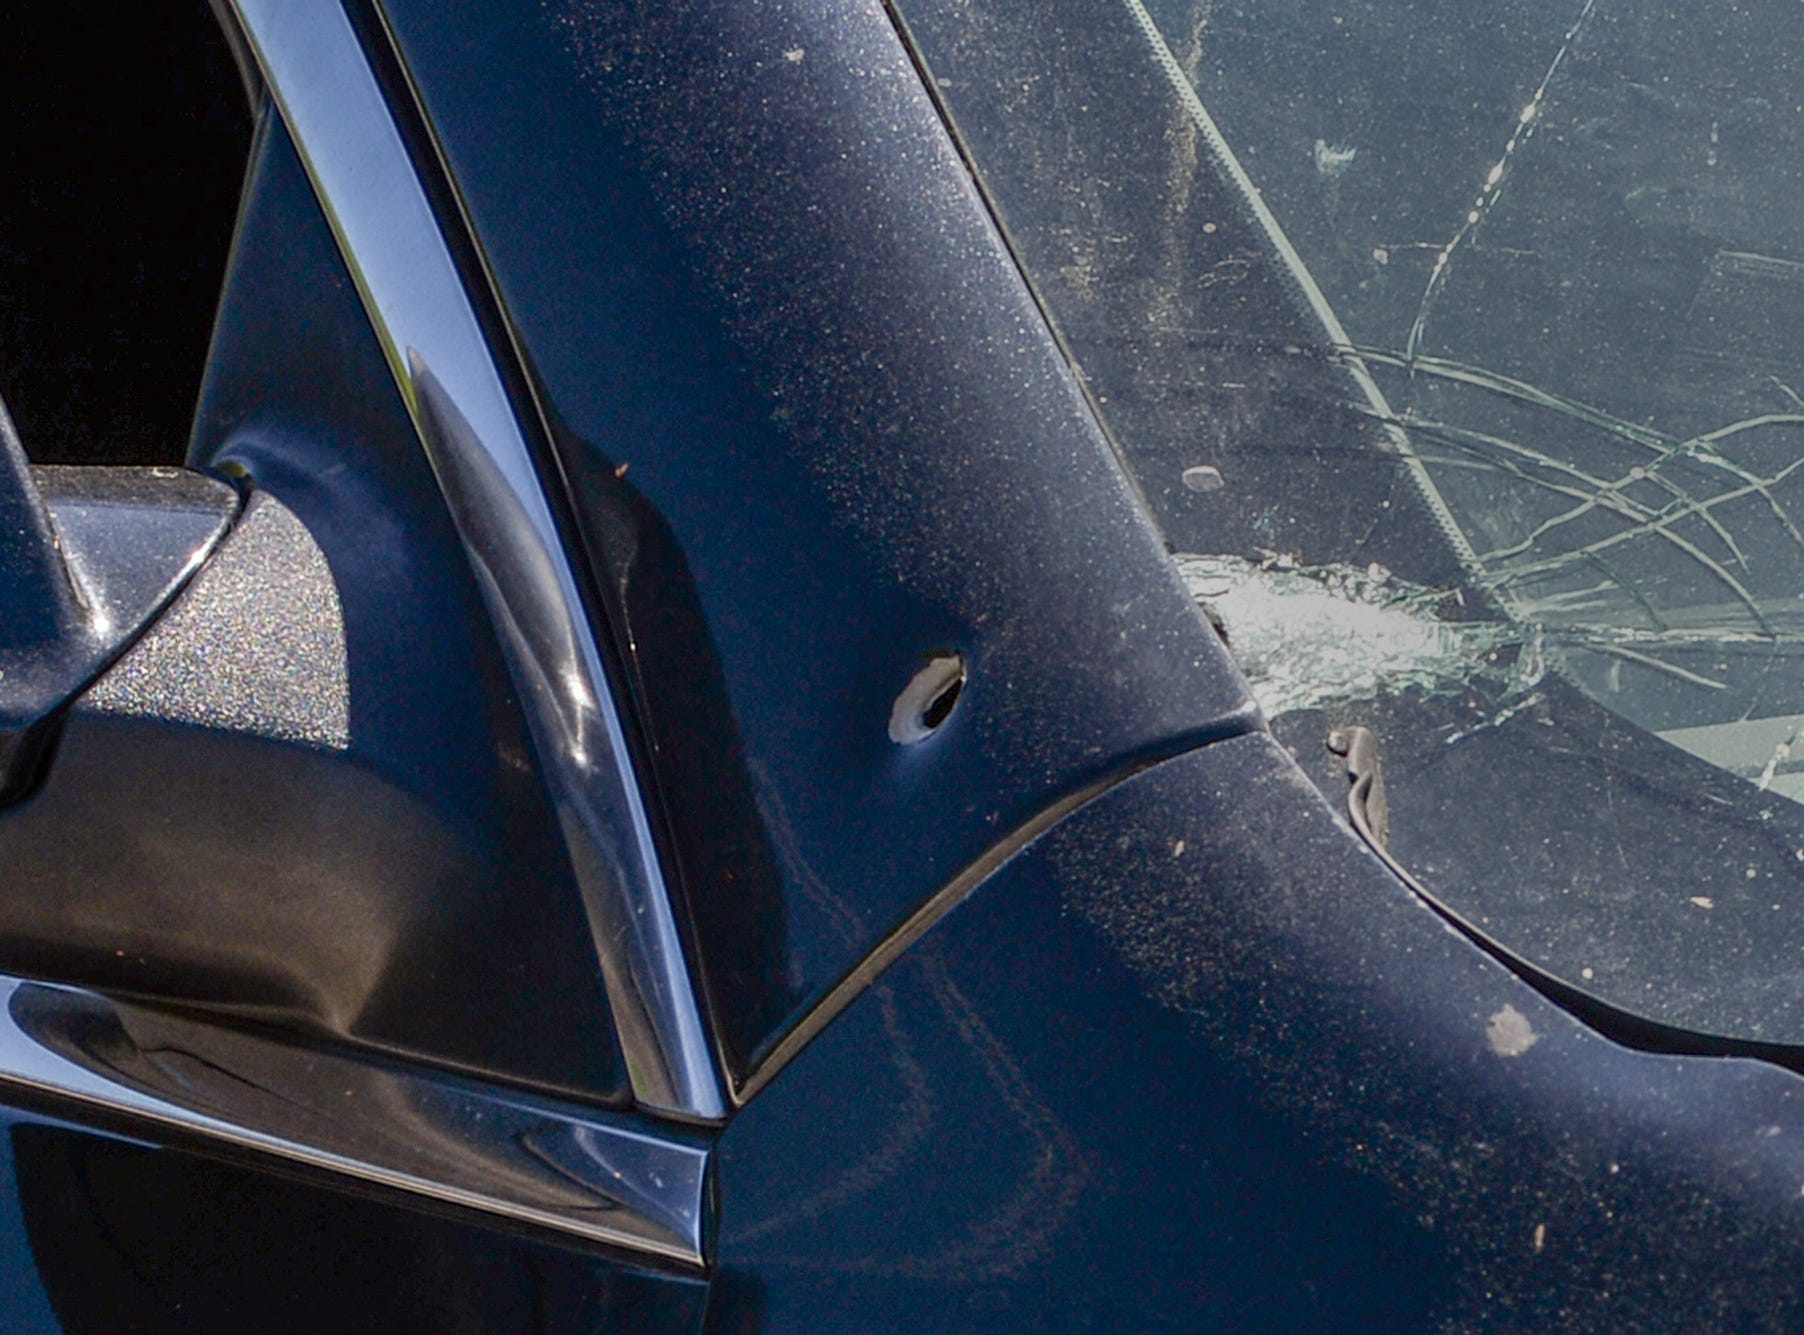 Anderson County Sheriff's Office deputies respond to a shooting at Hilltop Motel on Hwy 29 where two people were reported shot and as many as seven were involved in a dispute Wednesday, April 10, 2019. One of the two cars with bullet holes in it.